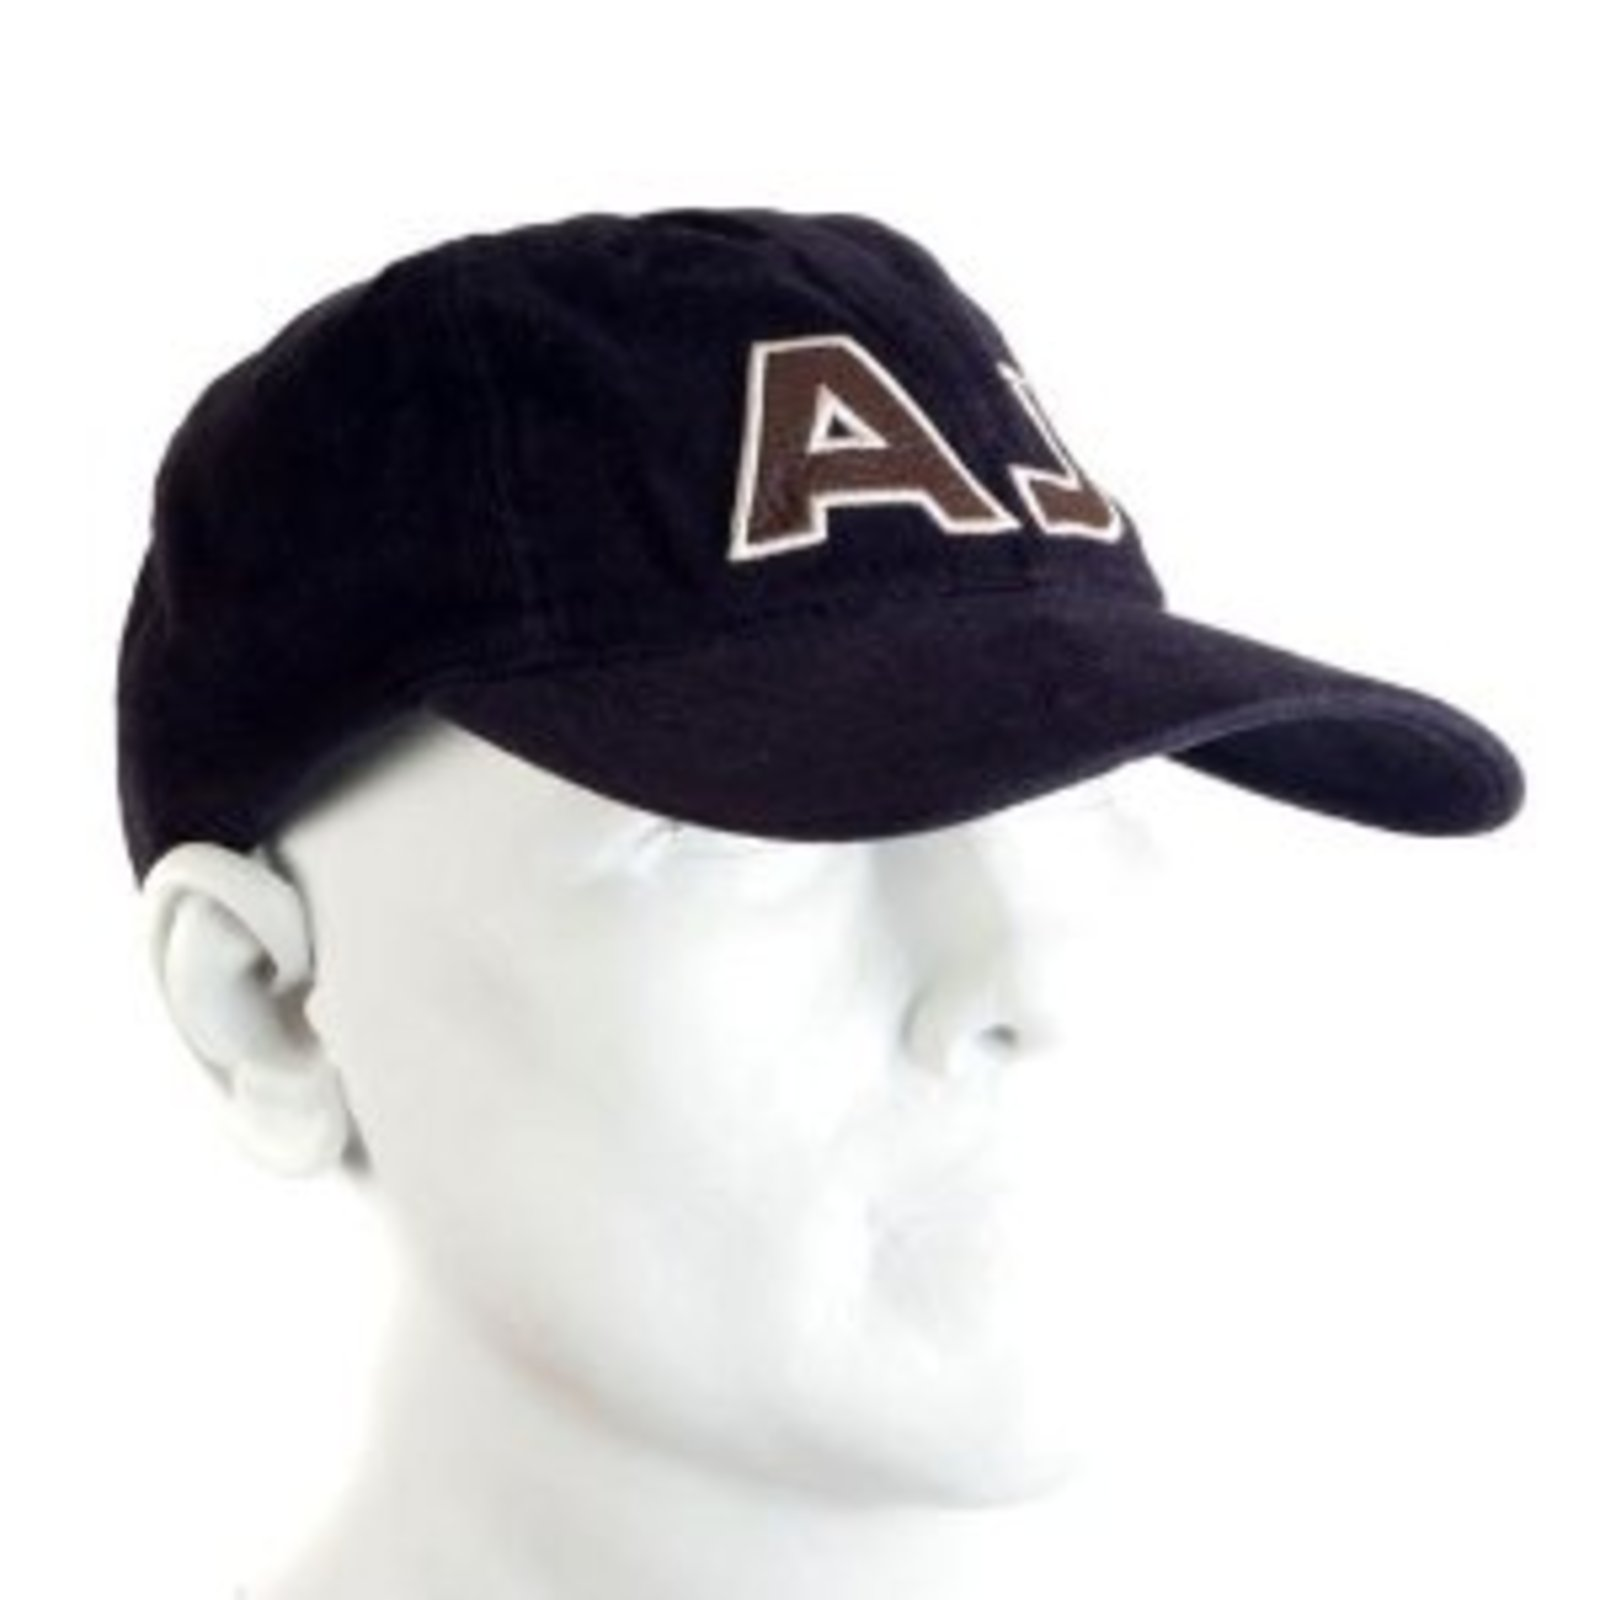 28002219b5d Armani Jeans Navy Cap G640133 at Togged Clothing